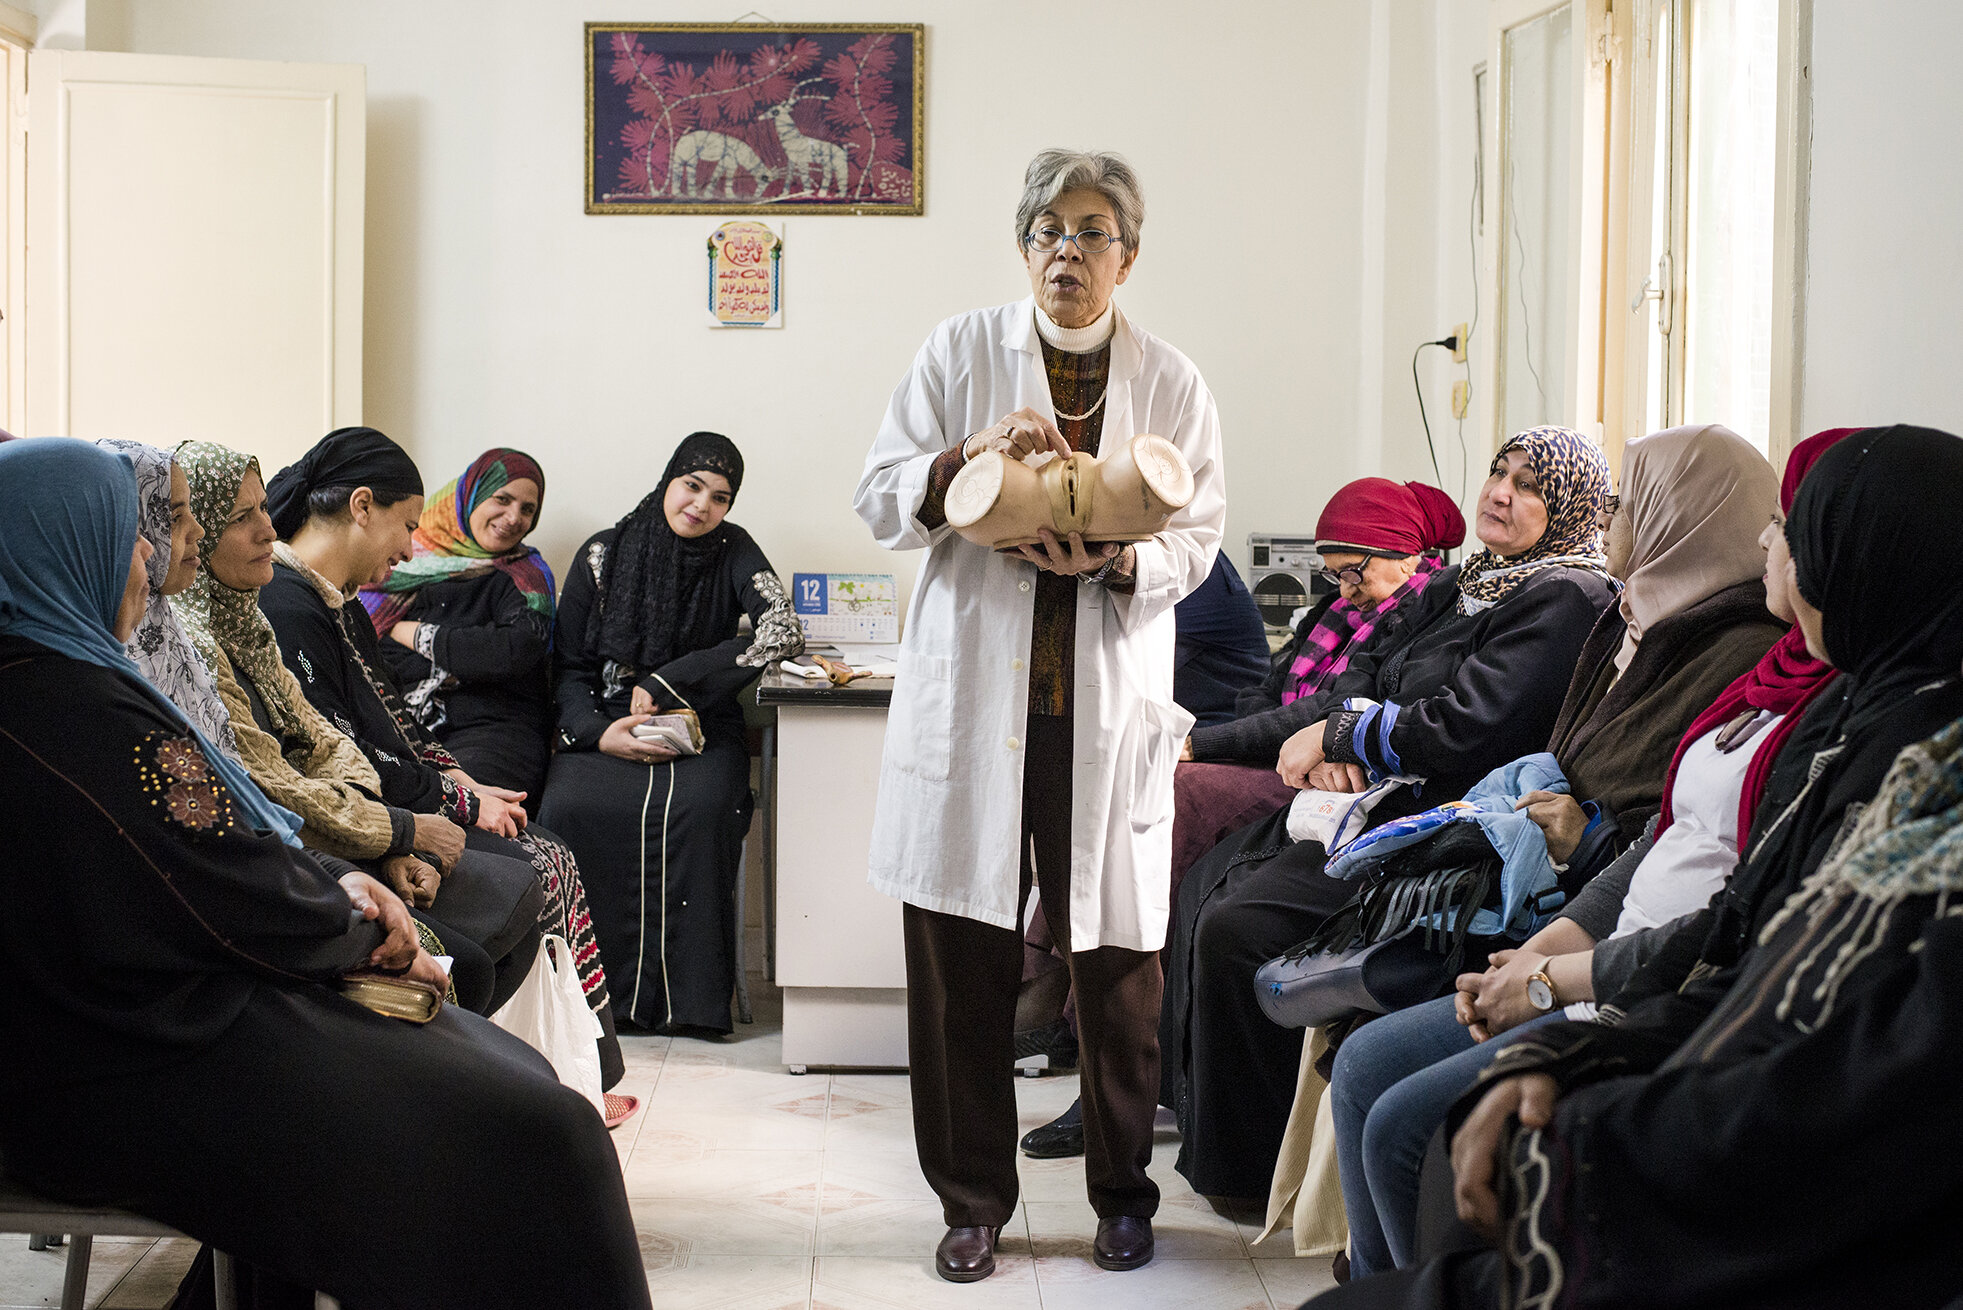 Dr. Mawaheb al Mowelhy is giving a seminar on the negative consequences of Female Genital Mutilation to the women gathered in a clinic located in an urban poor community in Cairo.The gynaecologist, after completing her PHD in Harvard, came back to Egypt where since 1994 she fights against the practice of female circumcision. Despite the criminalisation of the procedure and connected efforts of authorities, NGOs and even religious leaders, in some areas up to 80% of women are still being circumcised. After several cases of deaths of young girls after unsafe procedures, FGM has recently been mostly provided by medical practitioners who financially benefit from the situation. December 2018, Cairo, Egypt